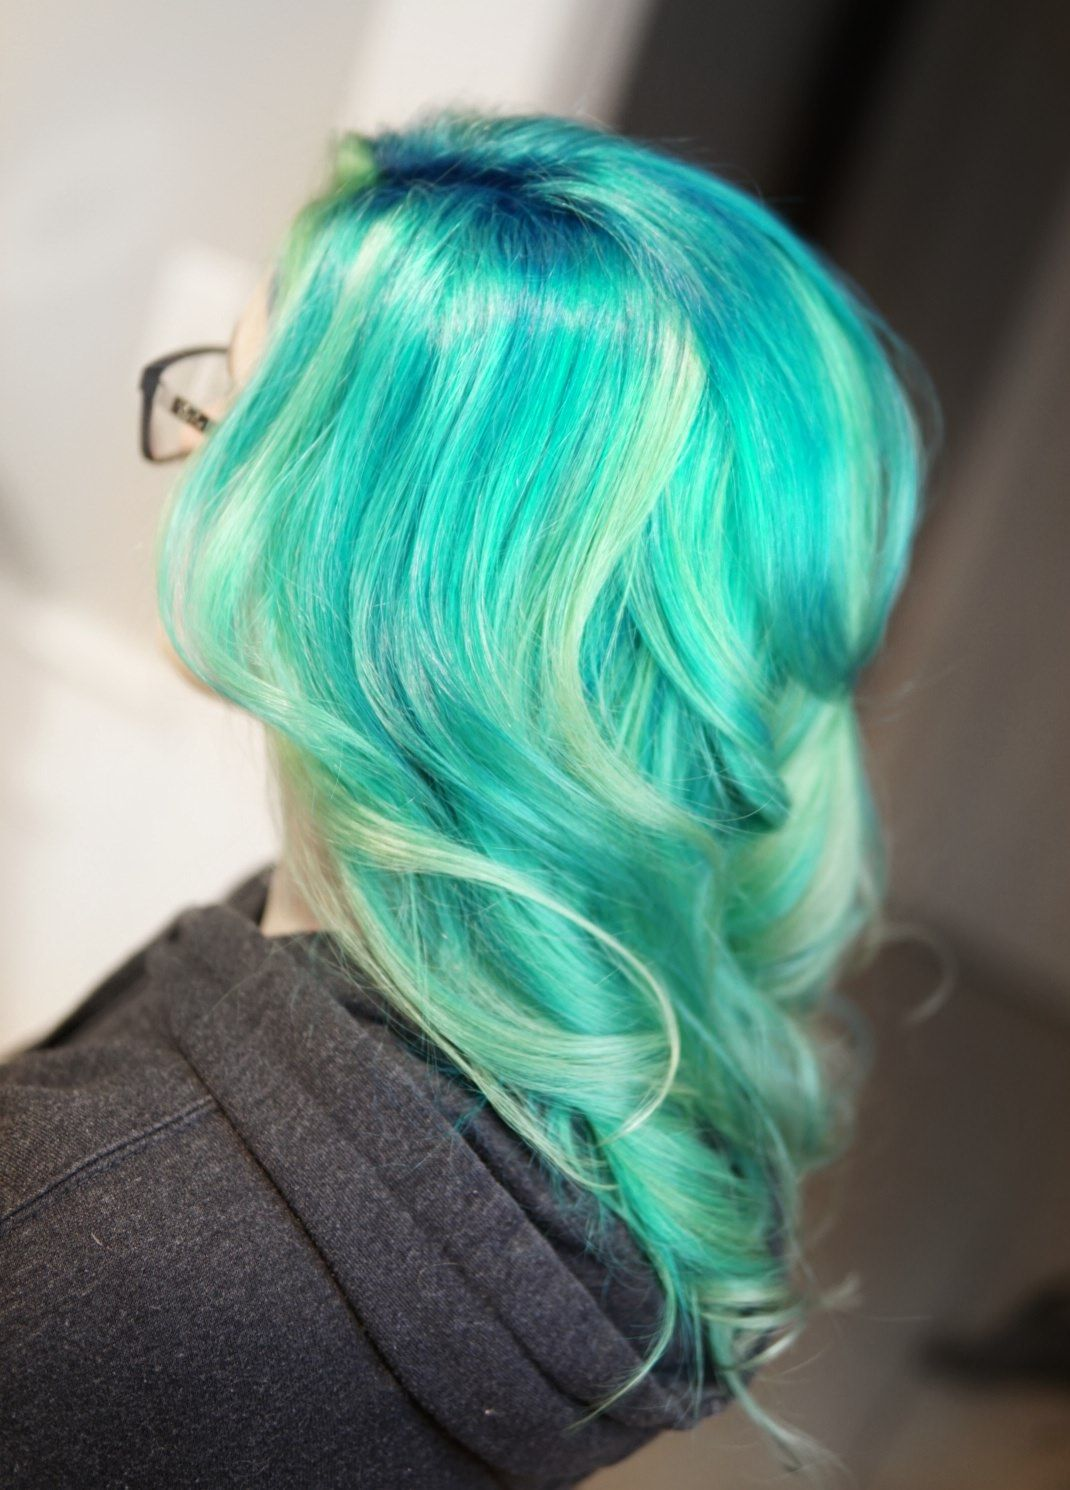 Pulpriot pastel neons vibrant even on the finest hair